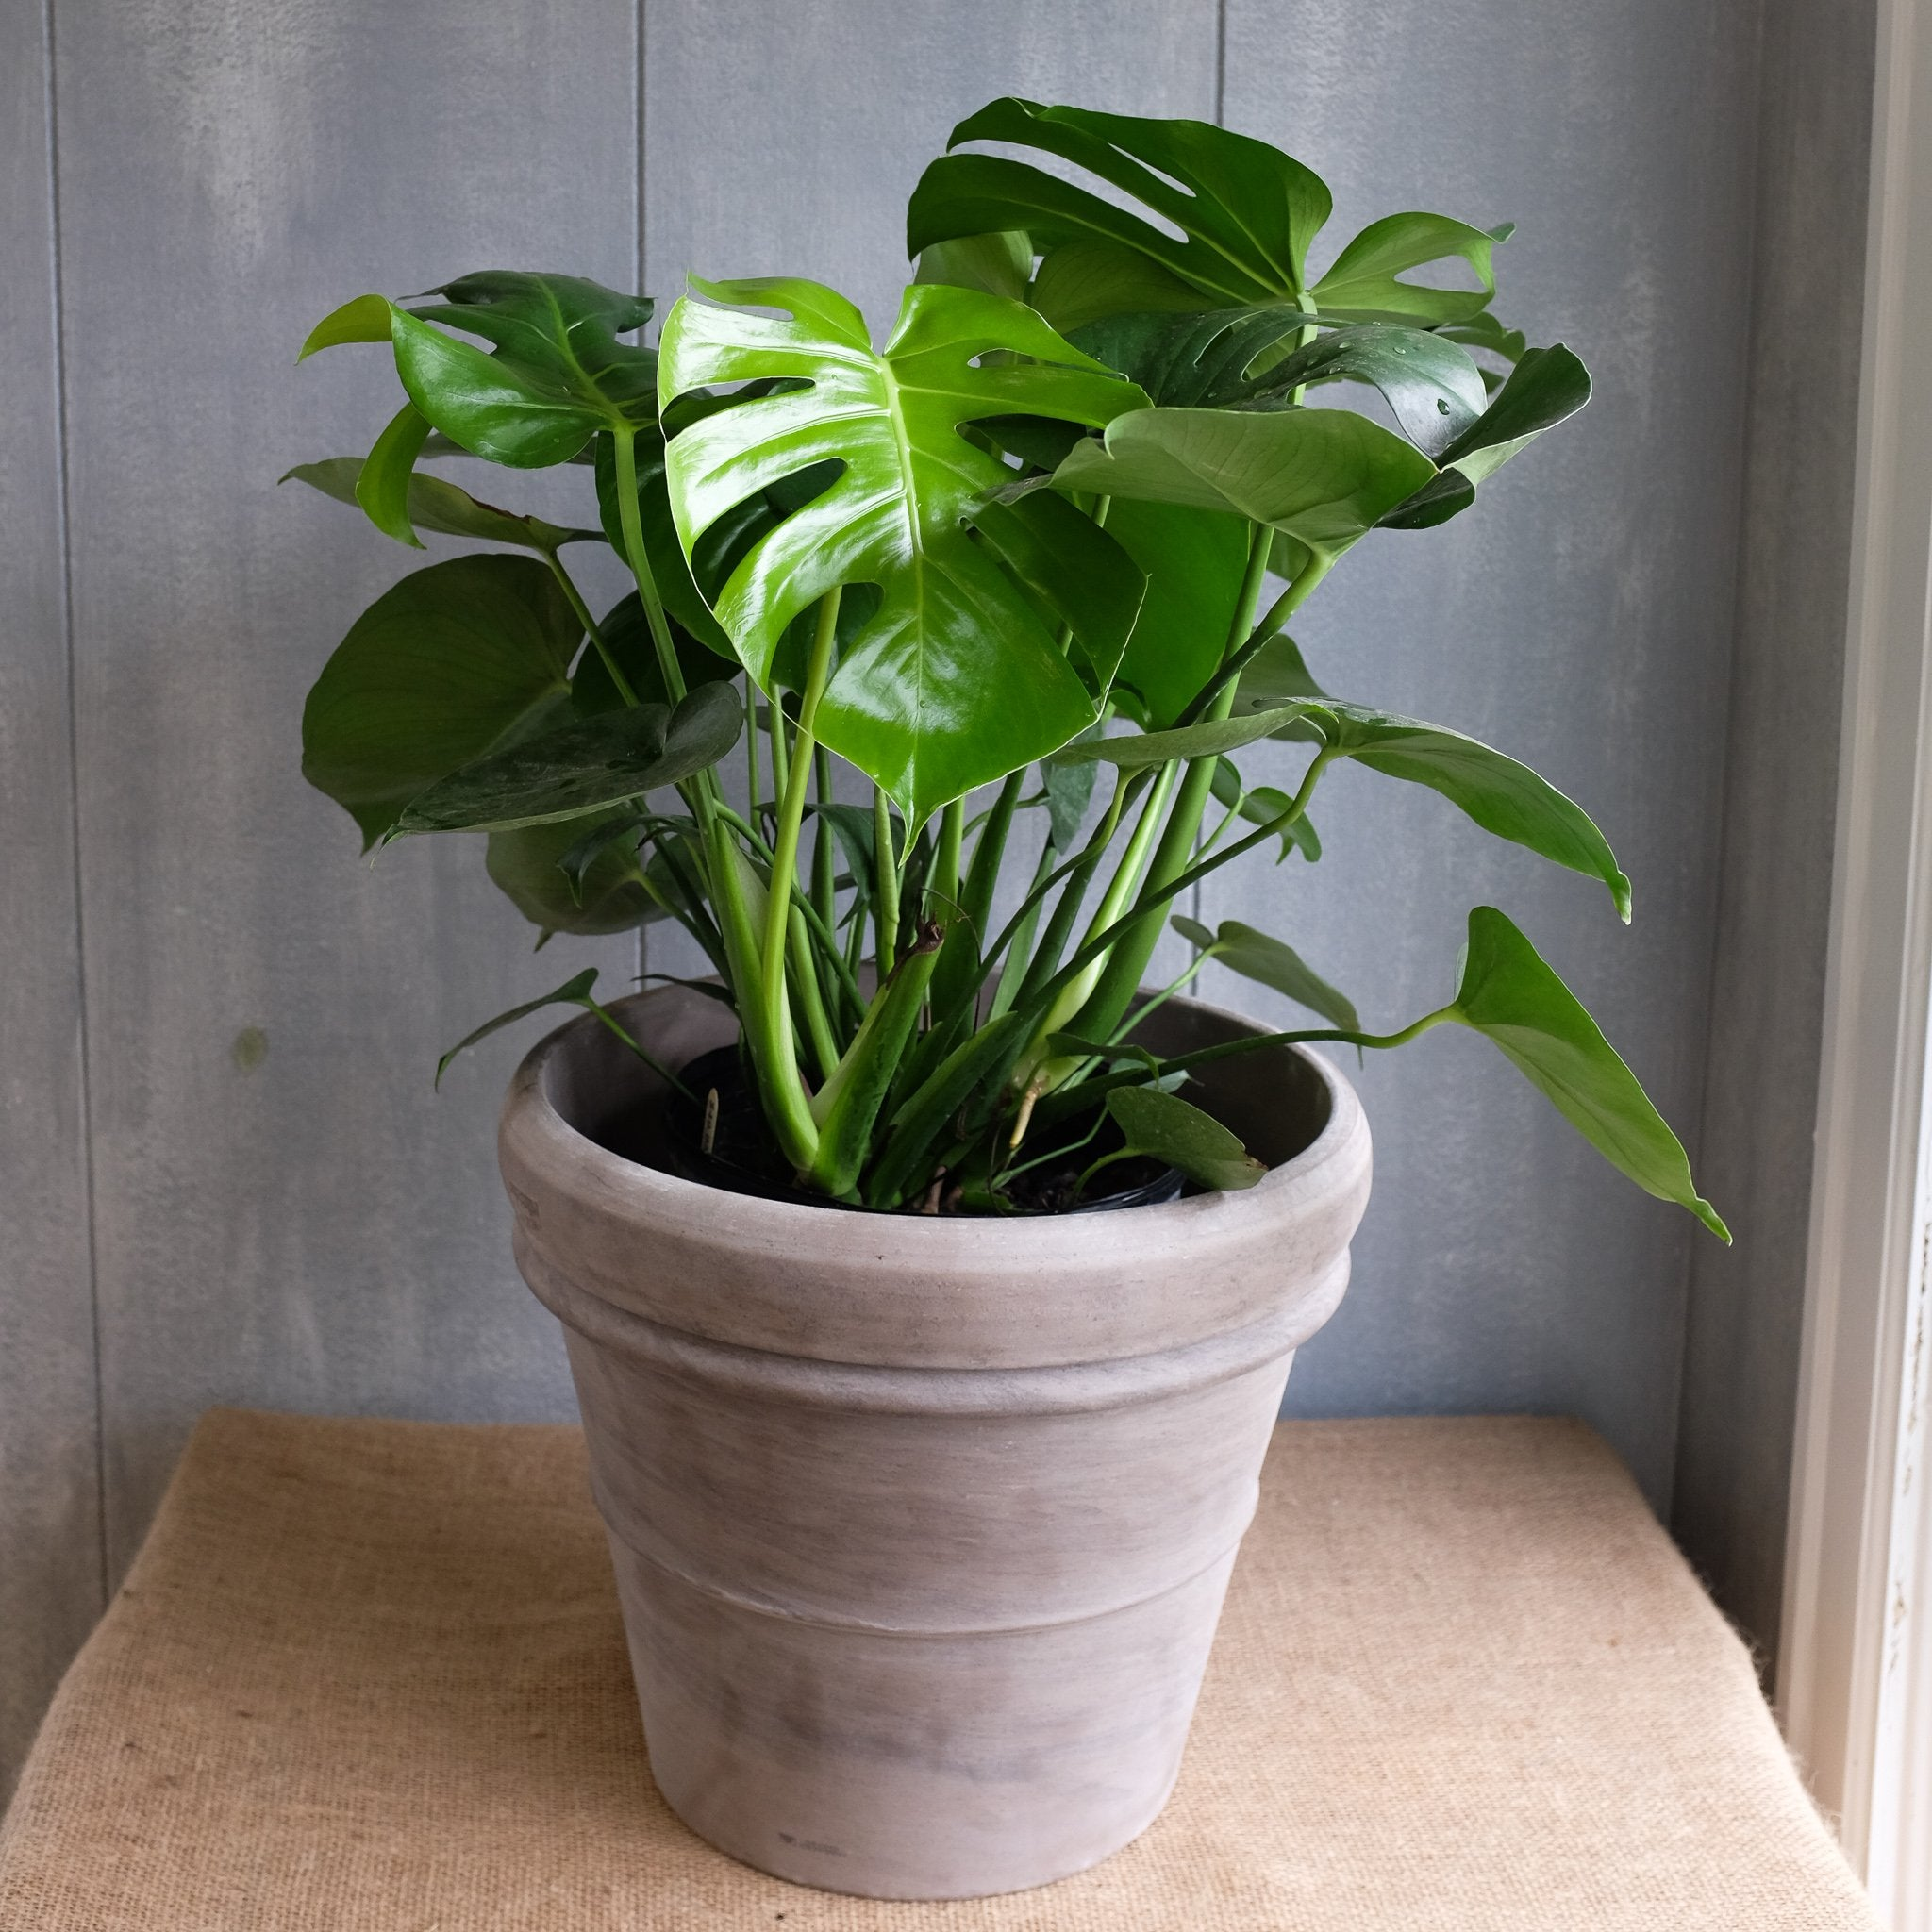 Monstera Deliciosa L Swiss Cheese Plant L Michler S L Lexington Ky,How To Make Mexican Rice In Rice Cooker